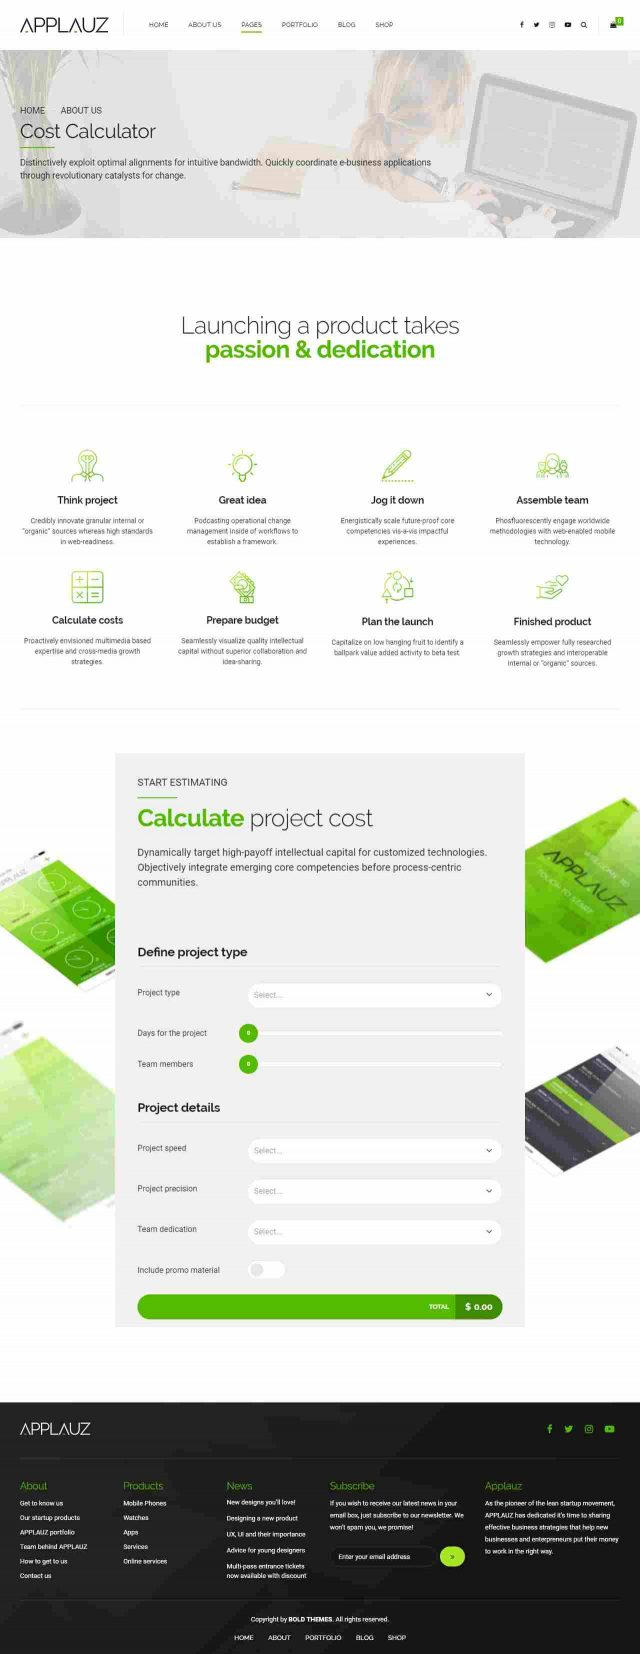 http://cost-calculator.bold-themes.com/new-main-demo/wp-content/uploads/sites/2/2018/04/applauz-640x1654.jpg